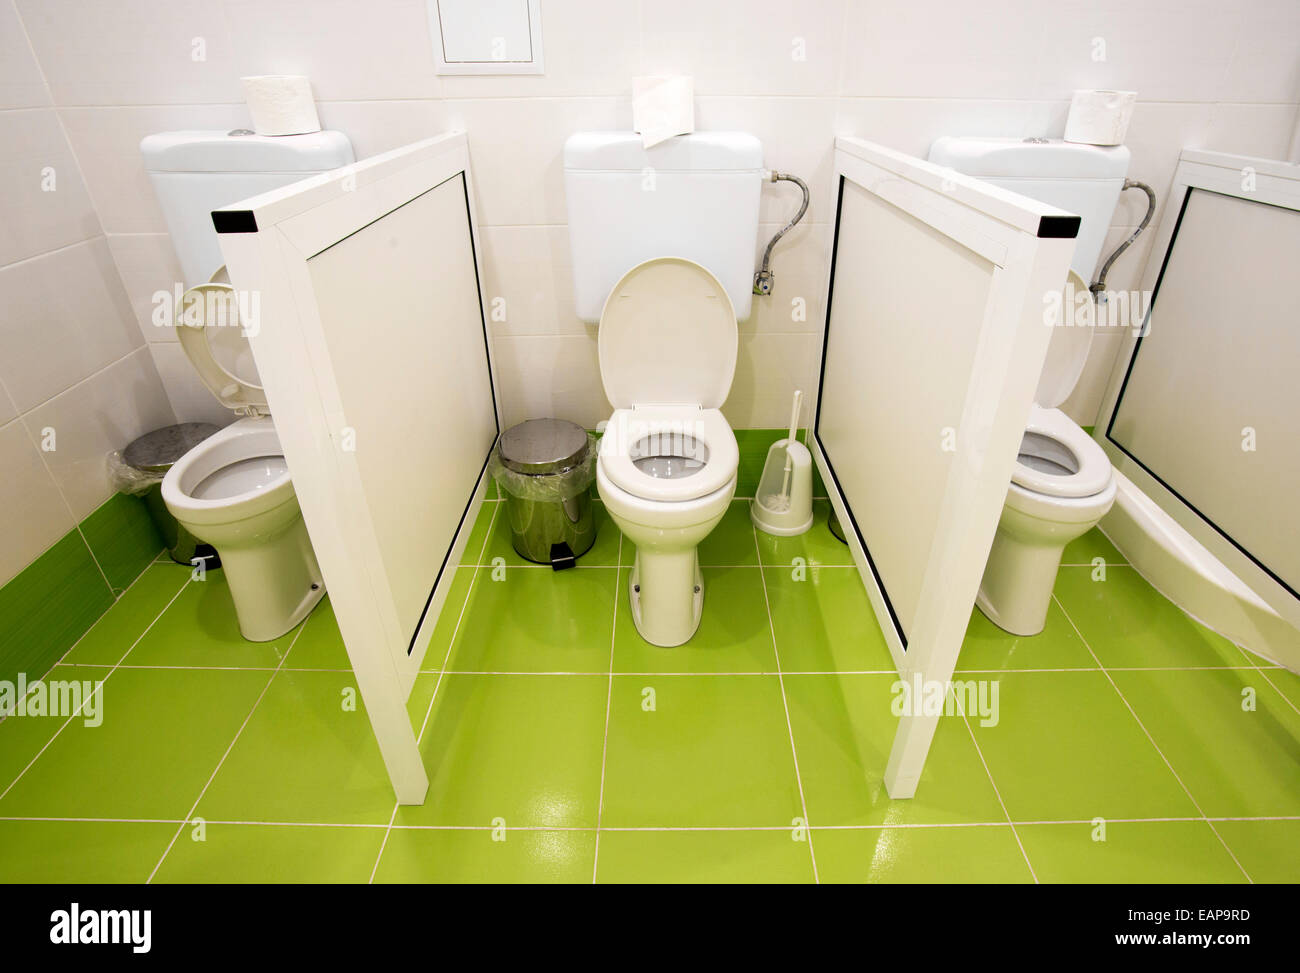 Small Toilets For Kids In A Kindergarten Stock